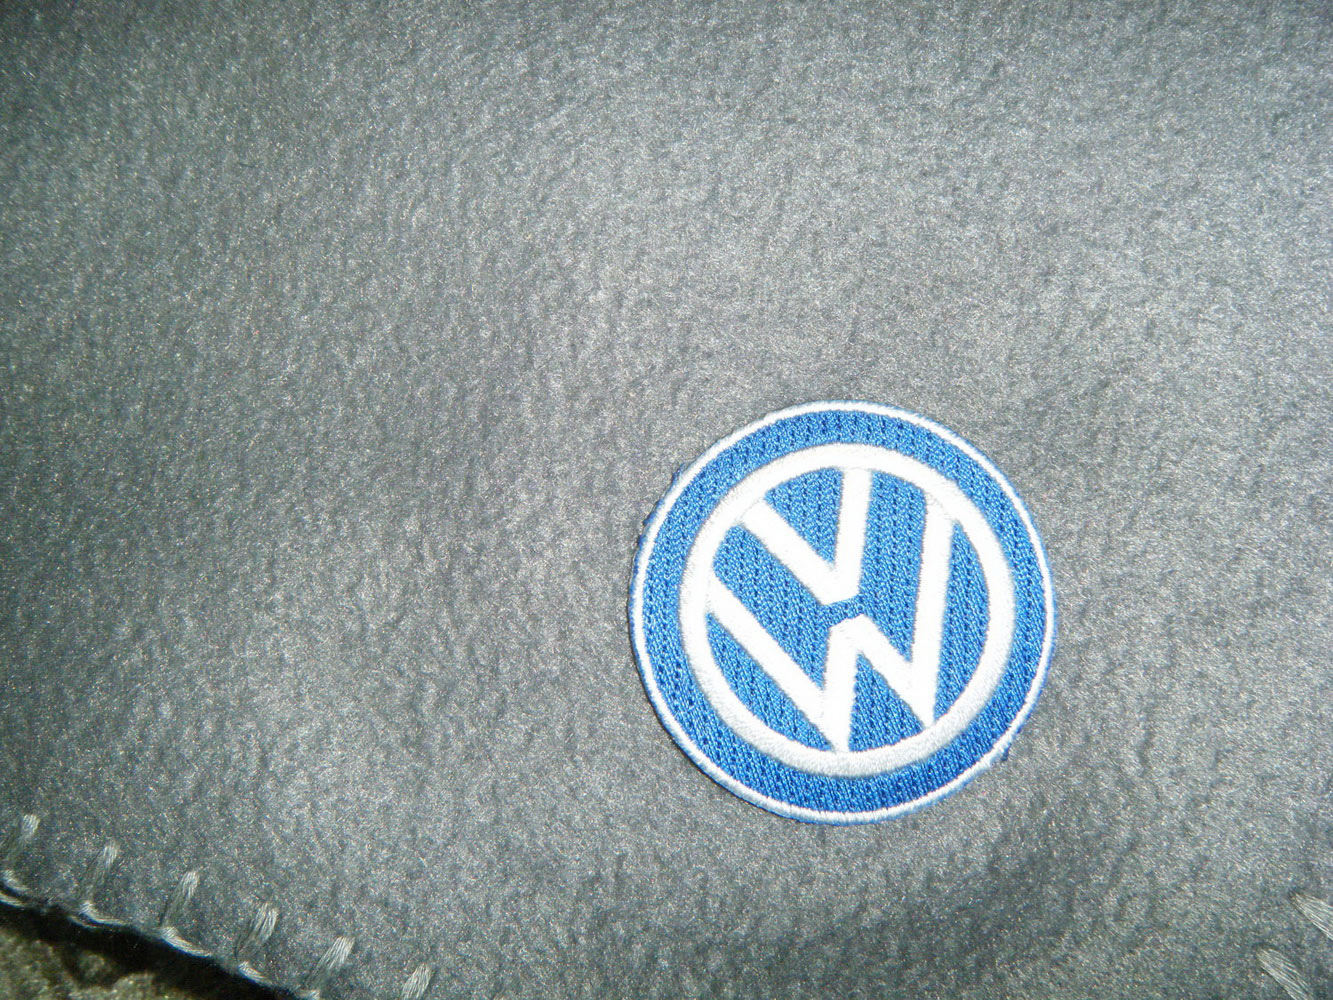 Embroidered Volkswagen logo on blanket